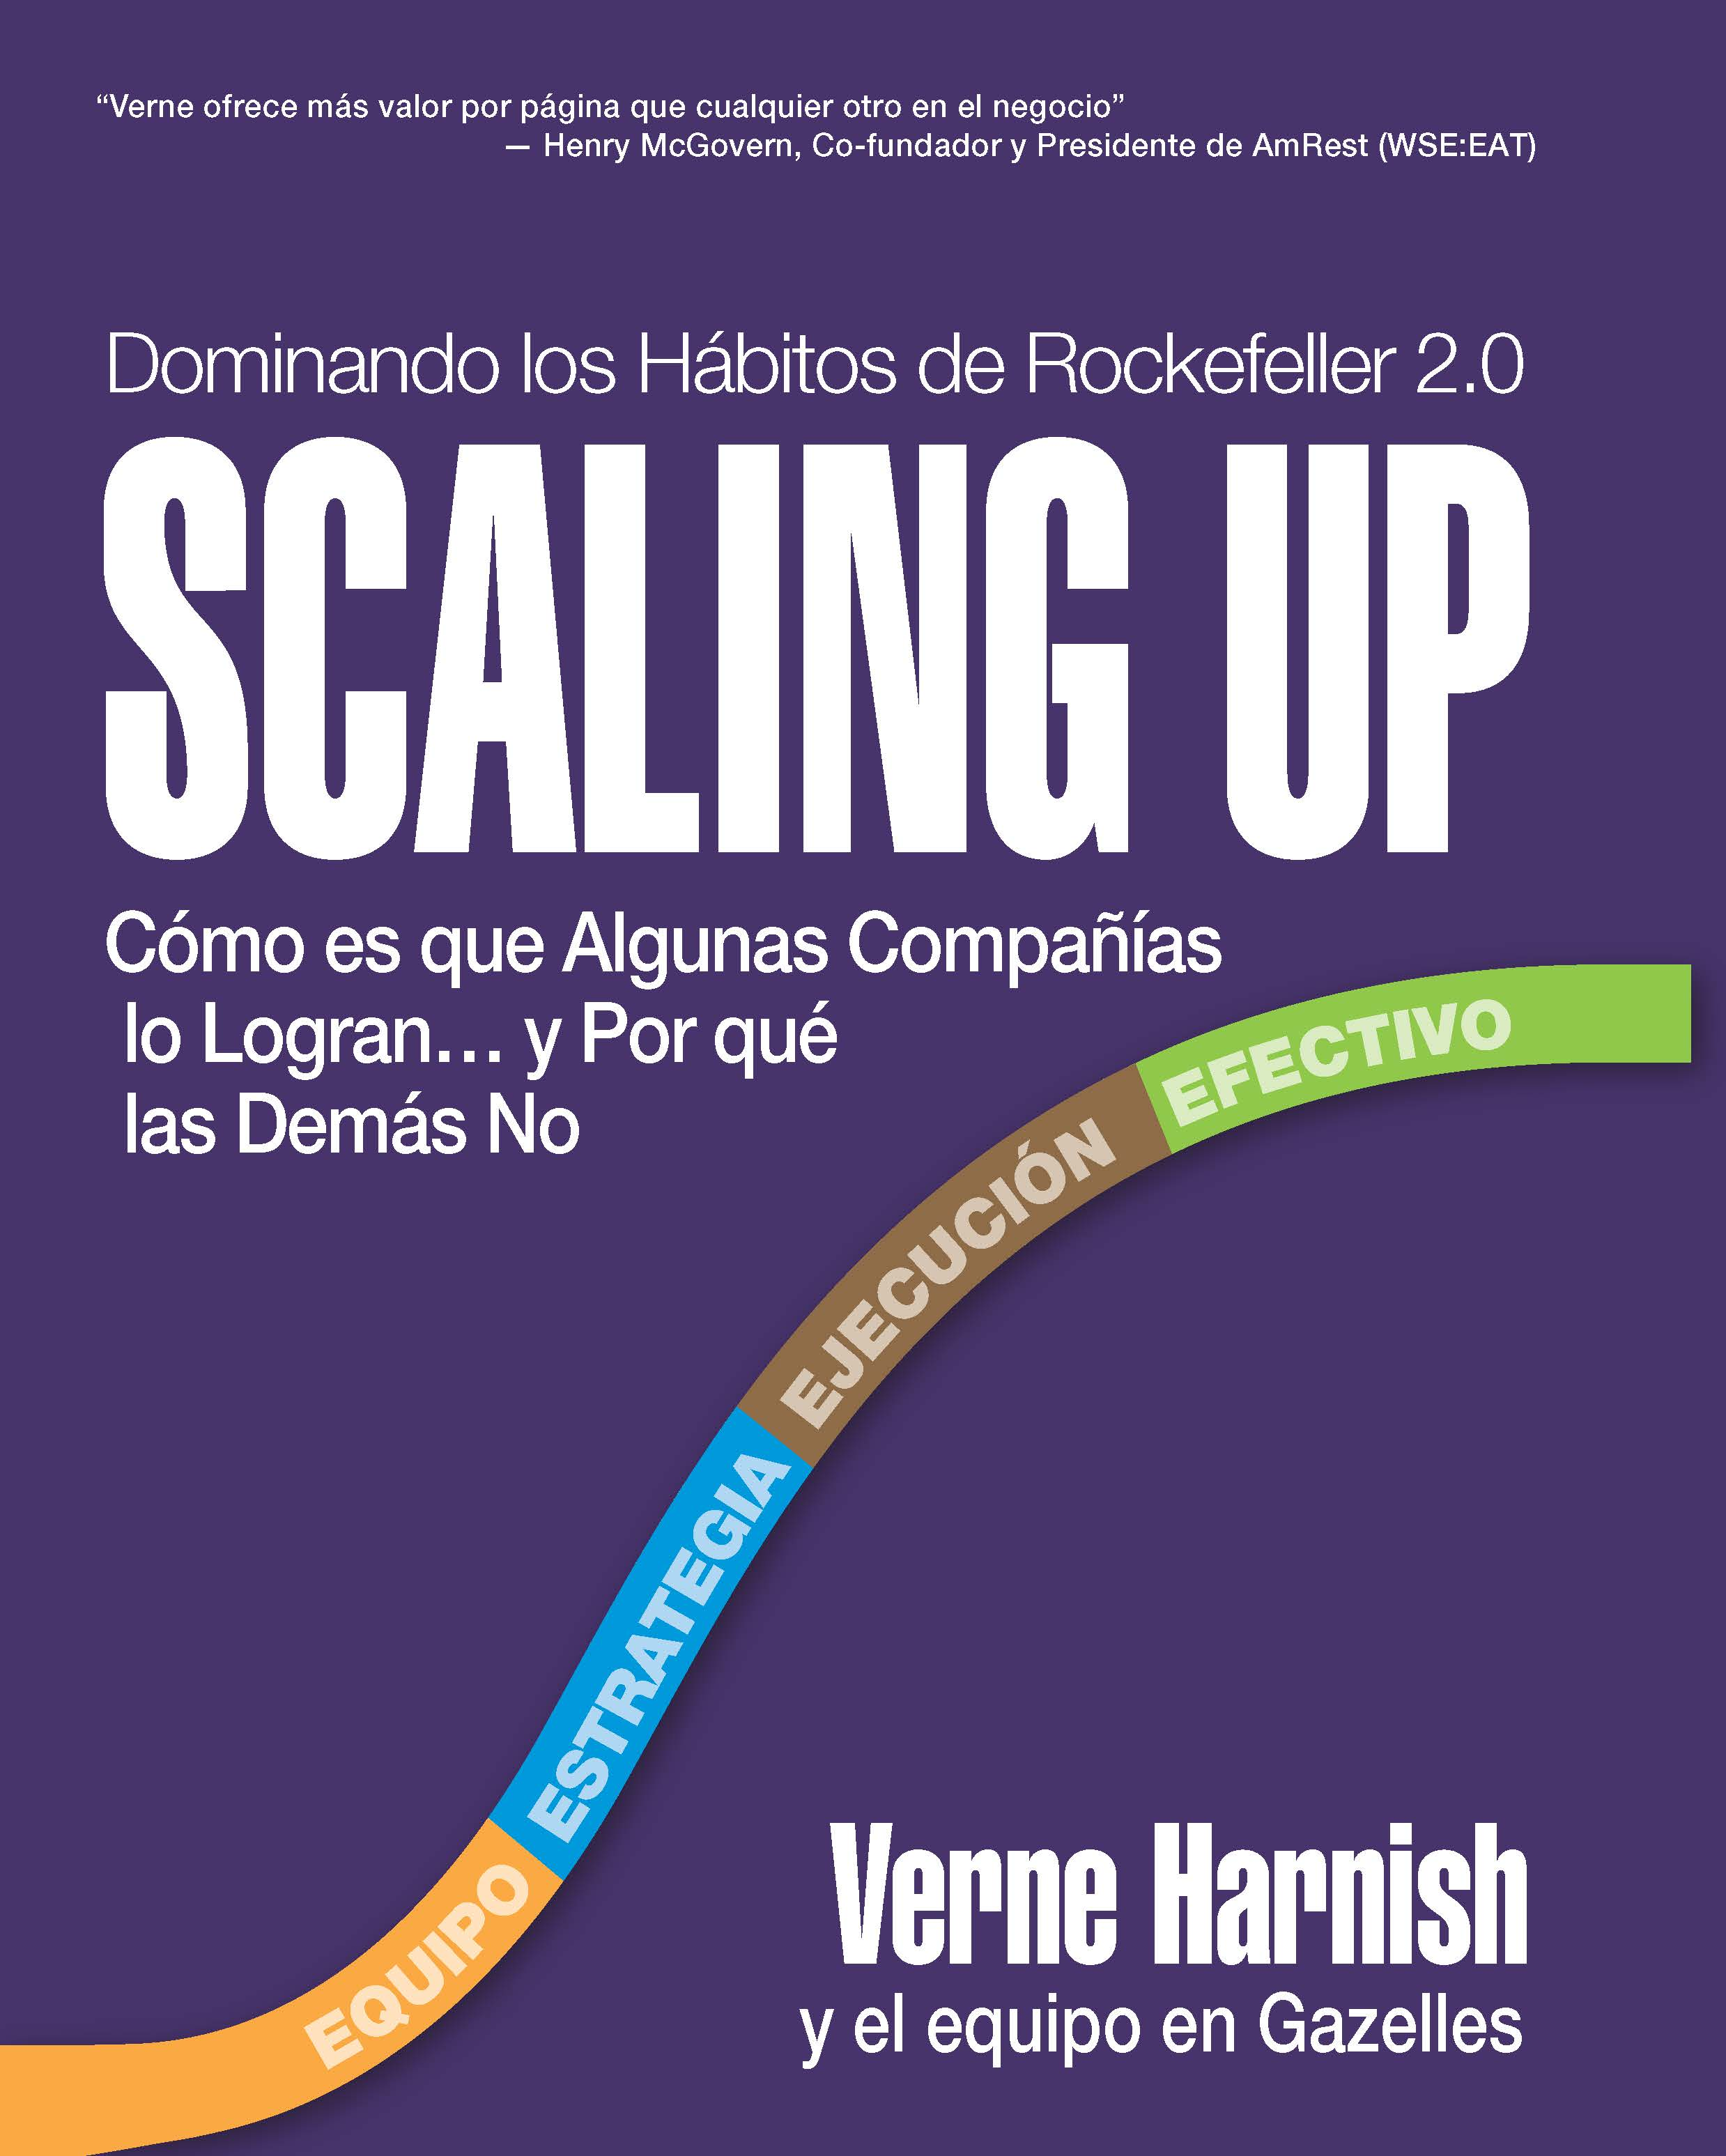 Scaling Up (Dominando los Hábitos de Rockefeller 2.0)